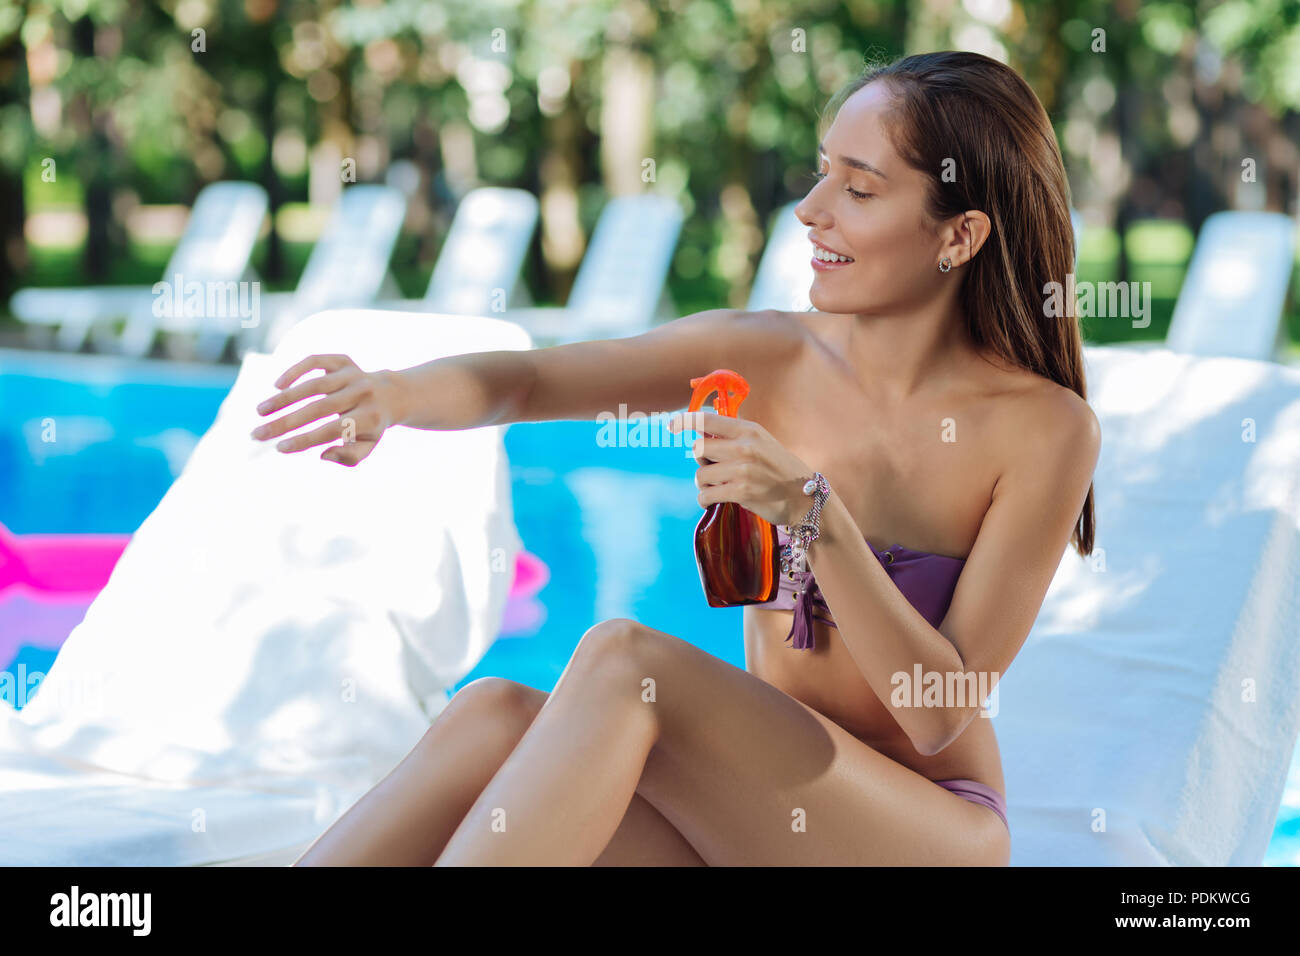 Appealing woman thinking abut healthcare while using sun protection - Stock Image